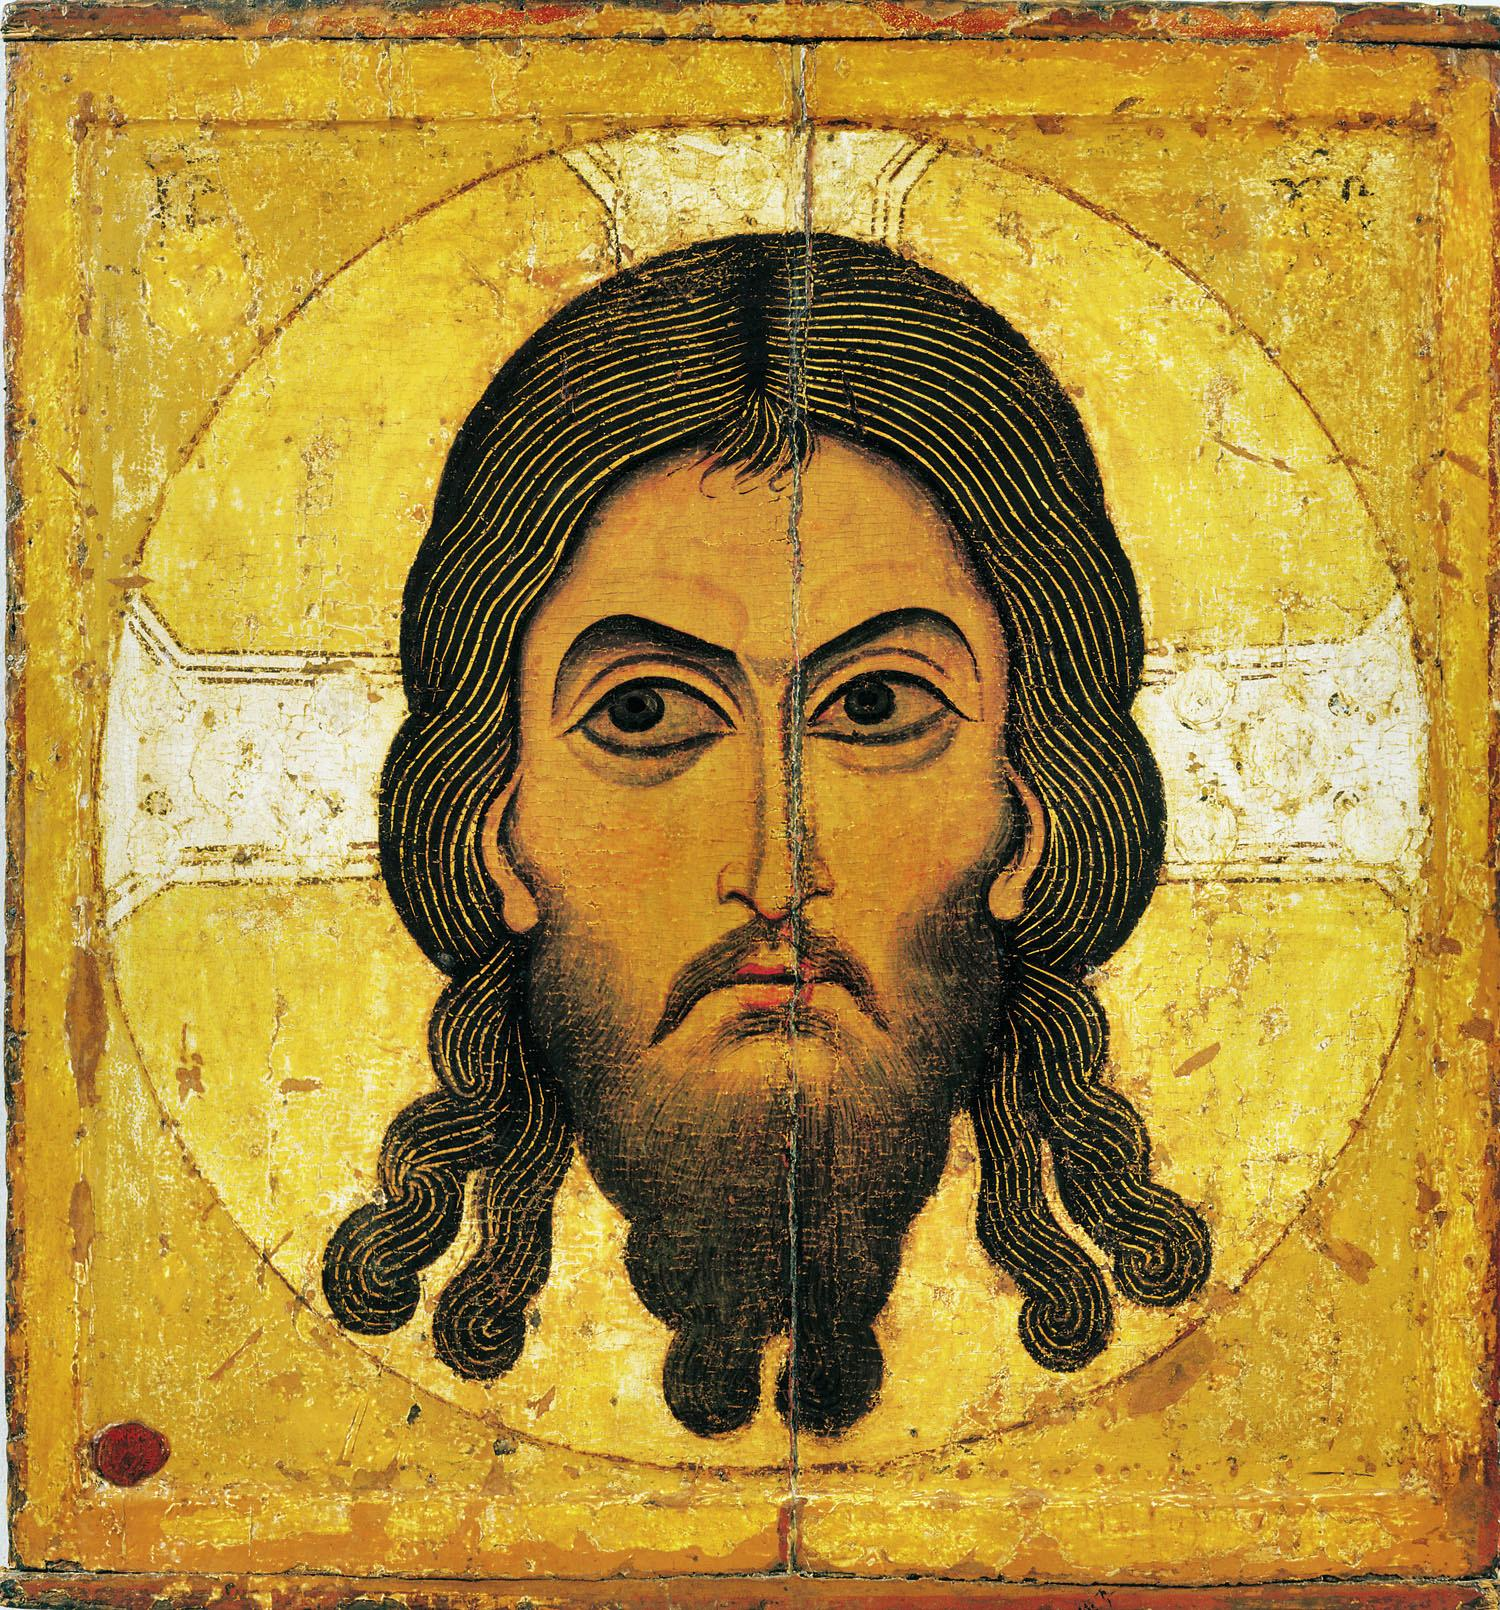 Christos_Acheiropoietos-Non-hand-made-image-of-Jesus-Christ-given-to-King-Abgar